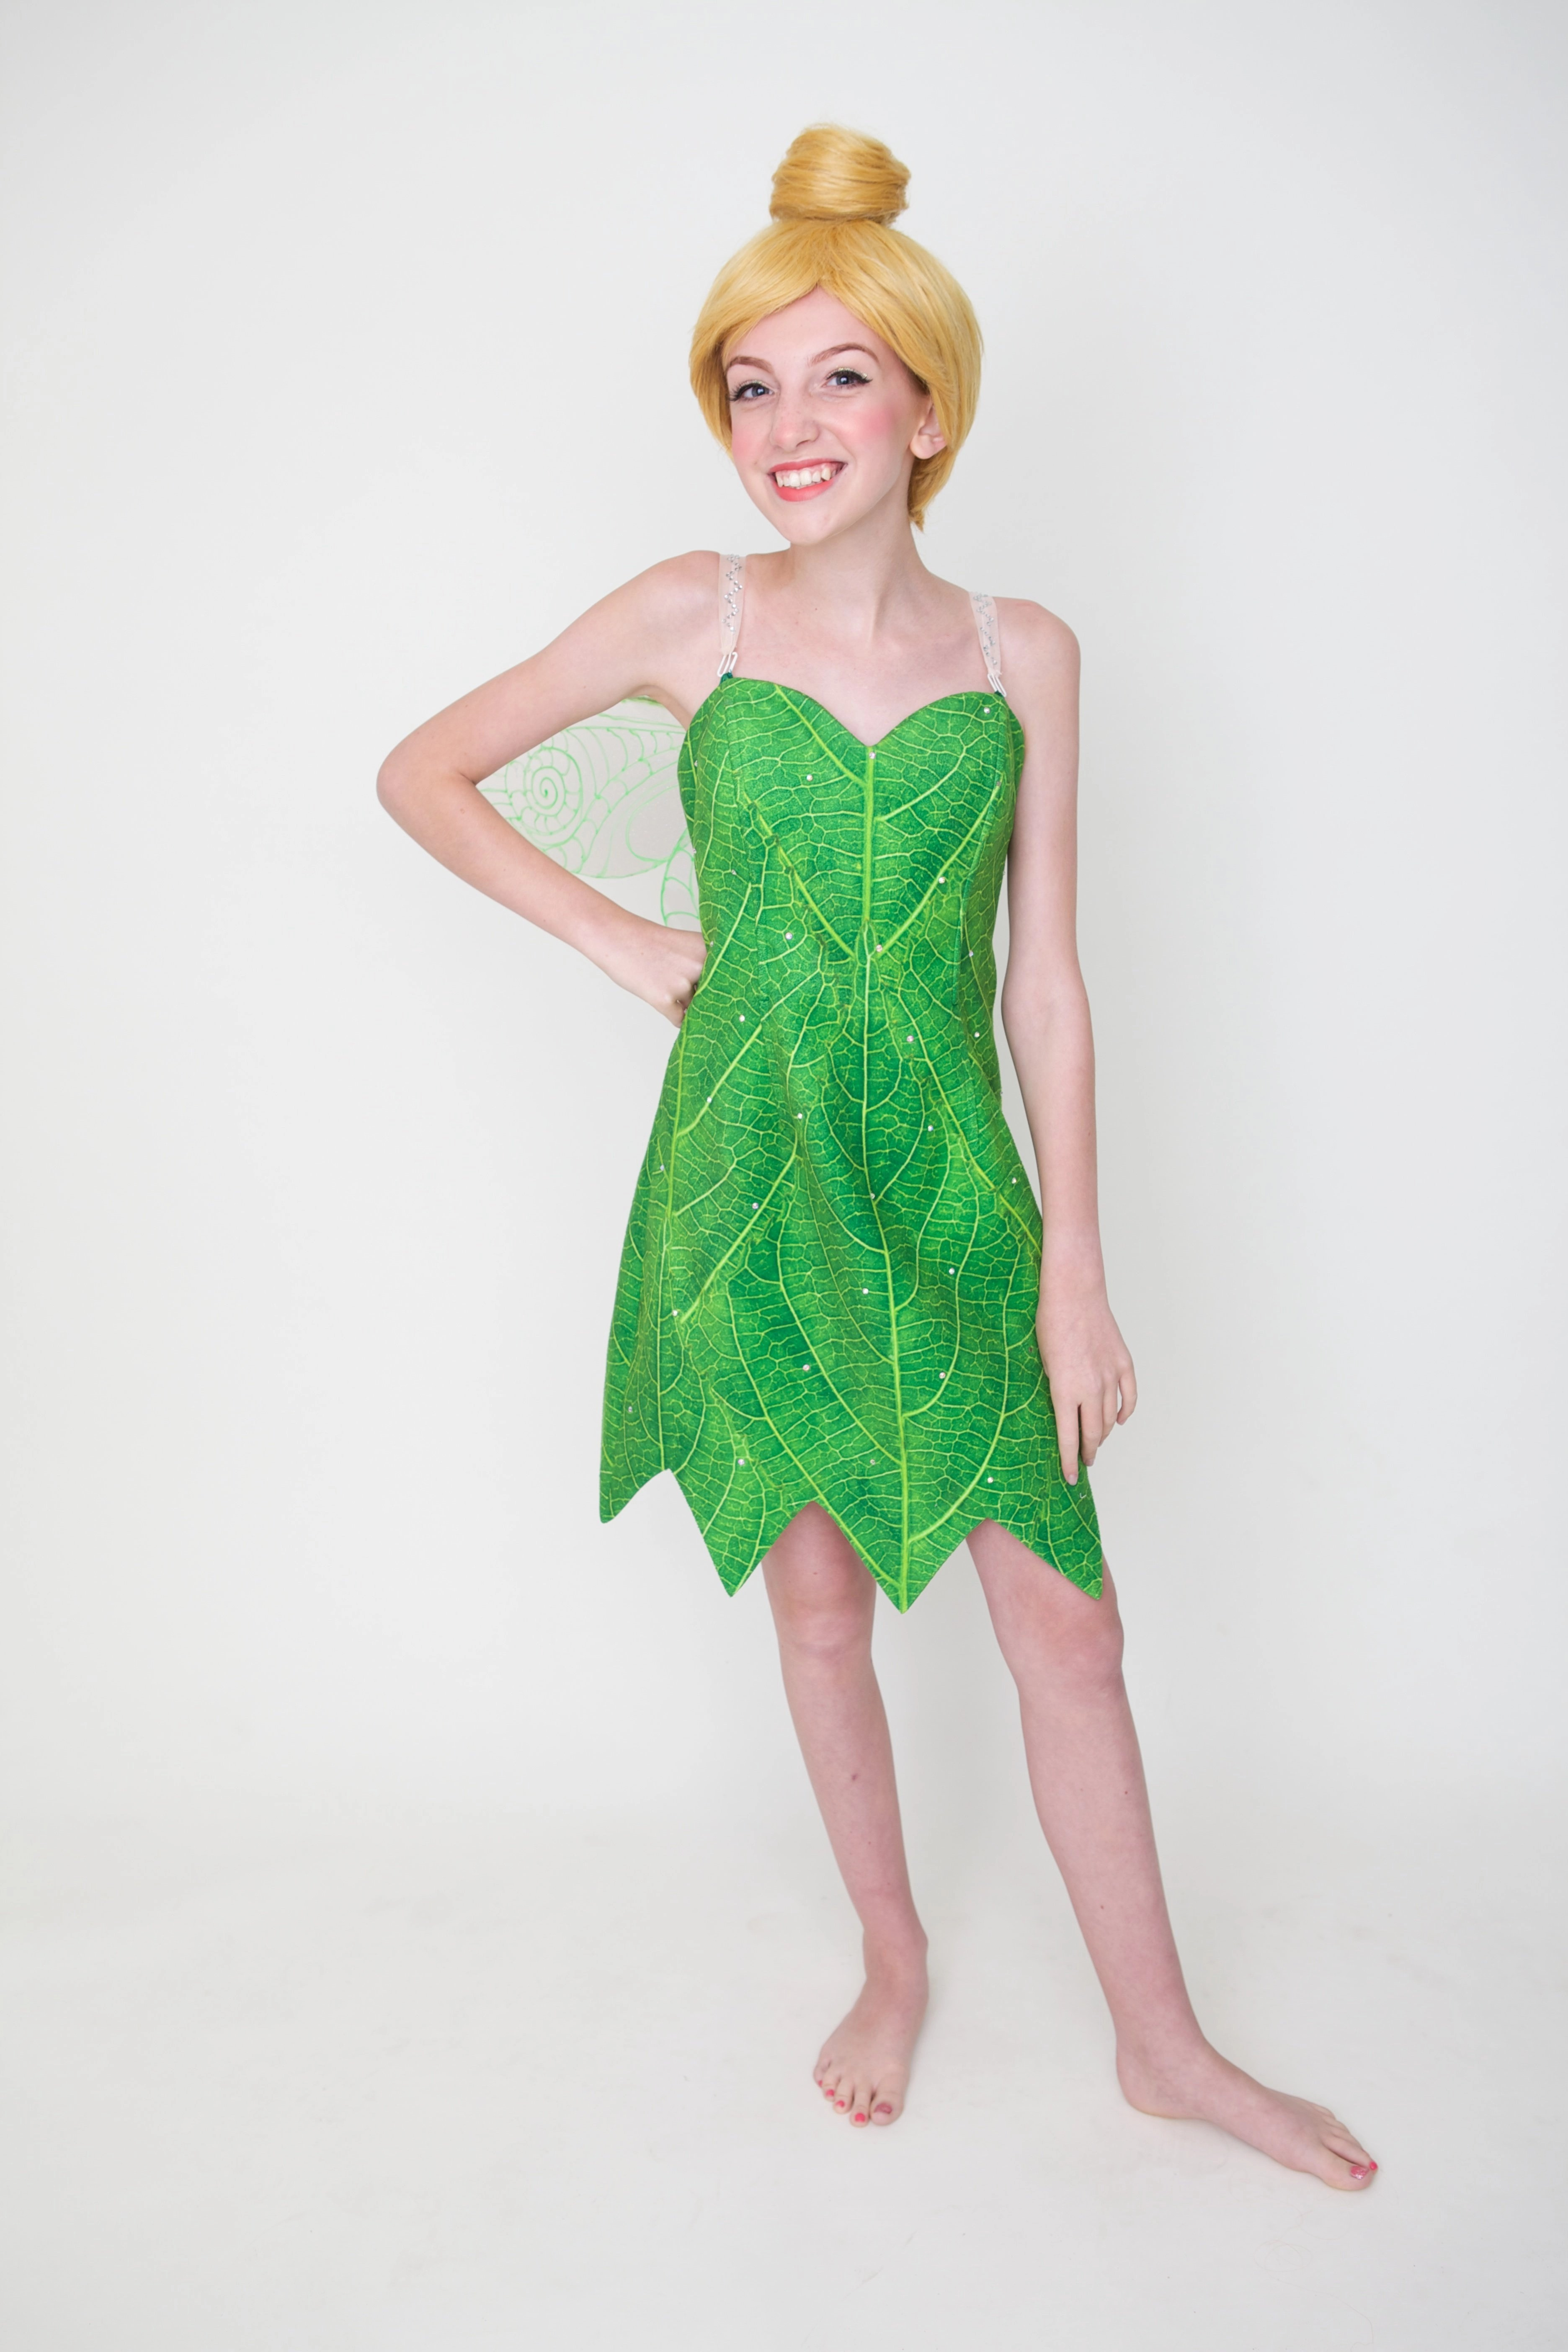 fairy neverland, copycat fairy character, character visits, fairy experience